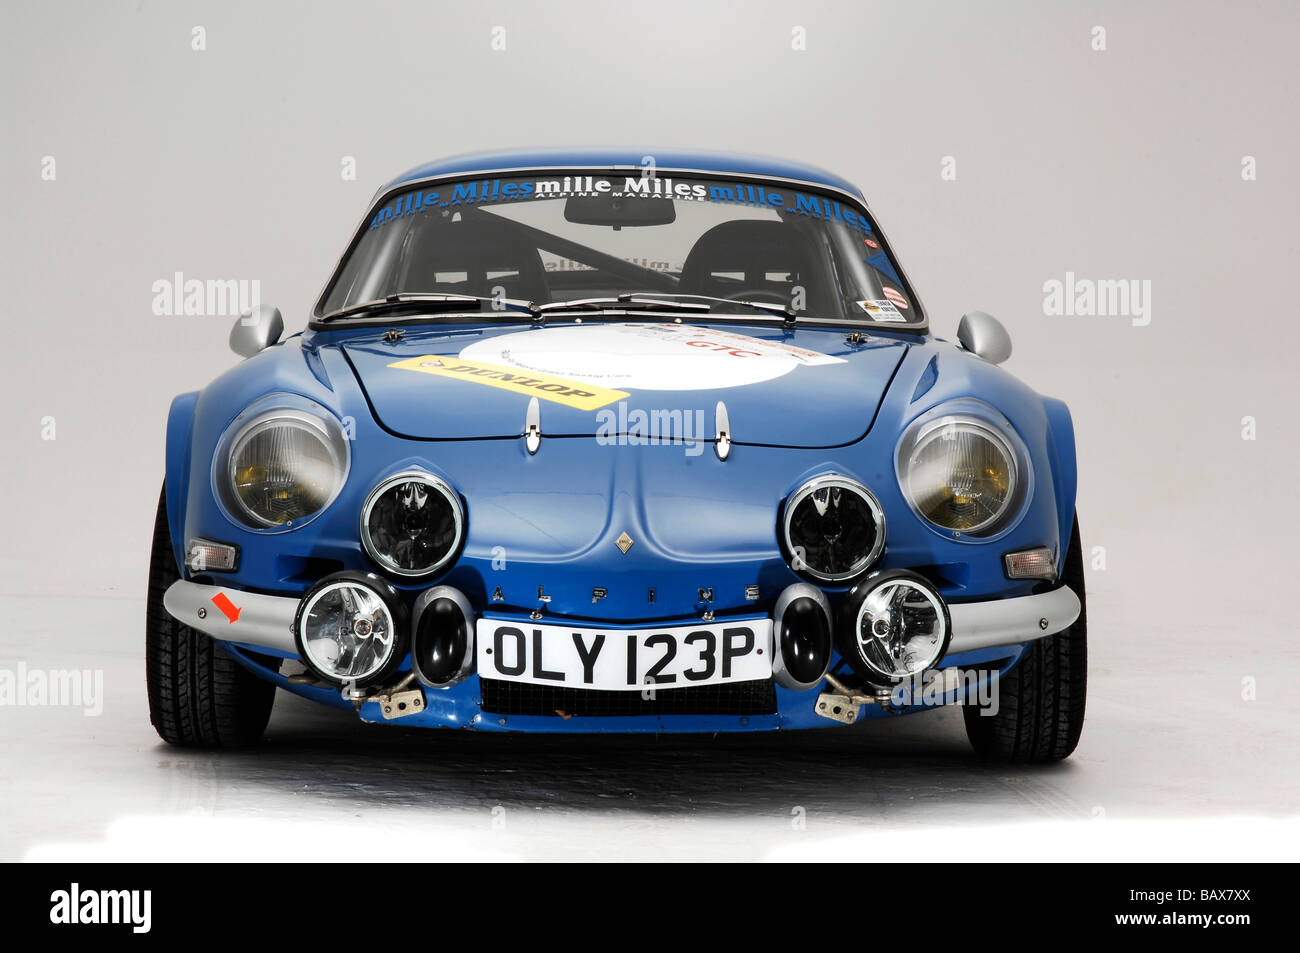 alpine renault a110 berlinette 1974 stock photo royalty free image 23933922 alamy. Black Bedroom Furniture Sets. Home Design Ideas